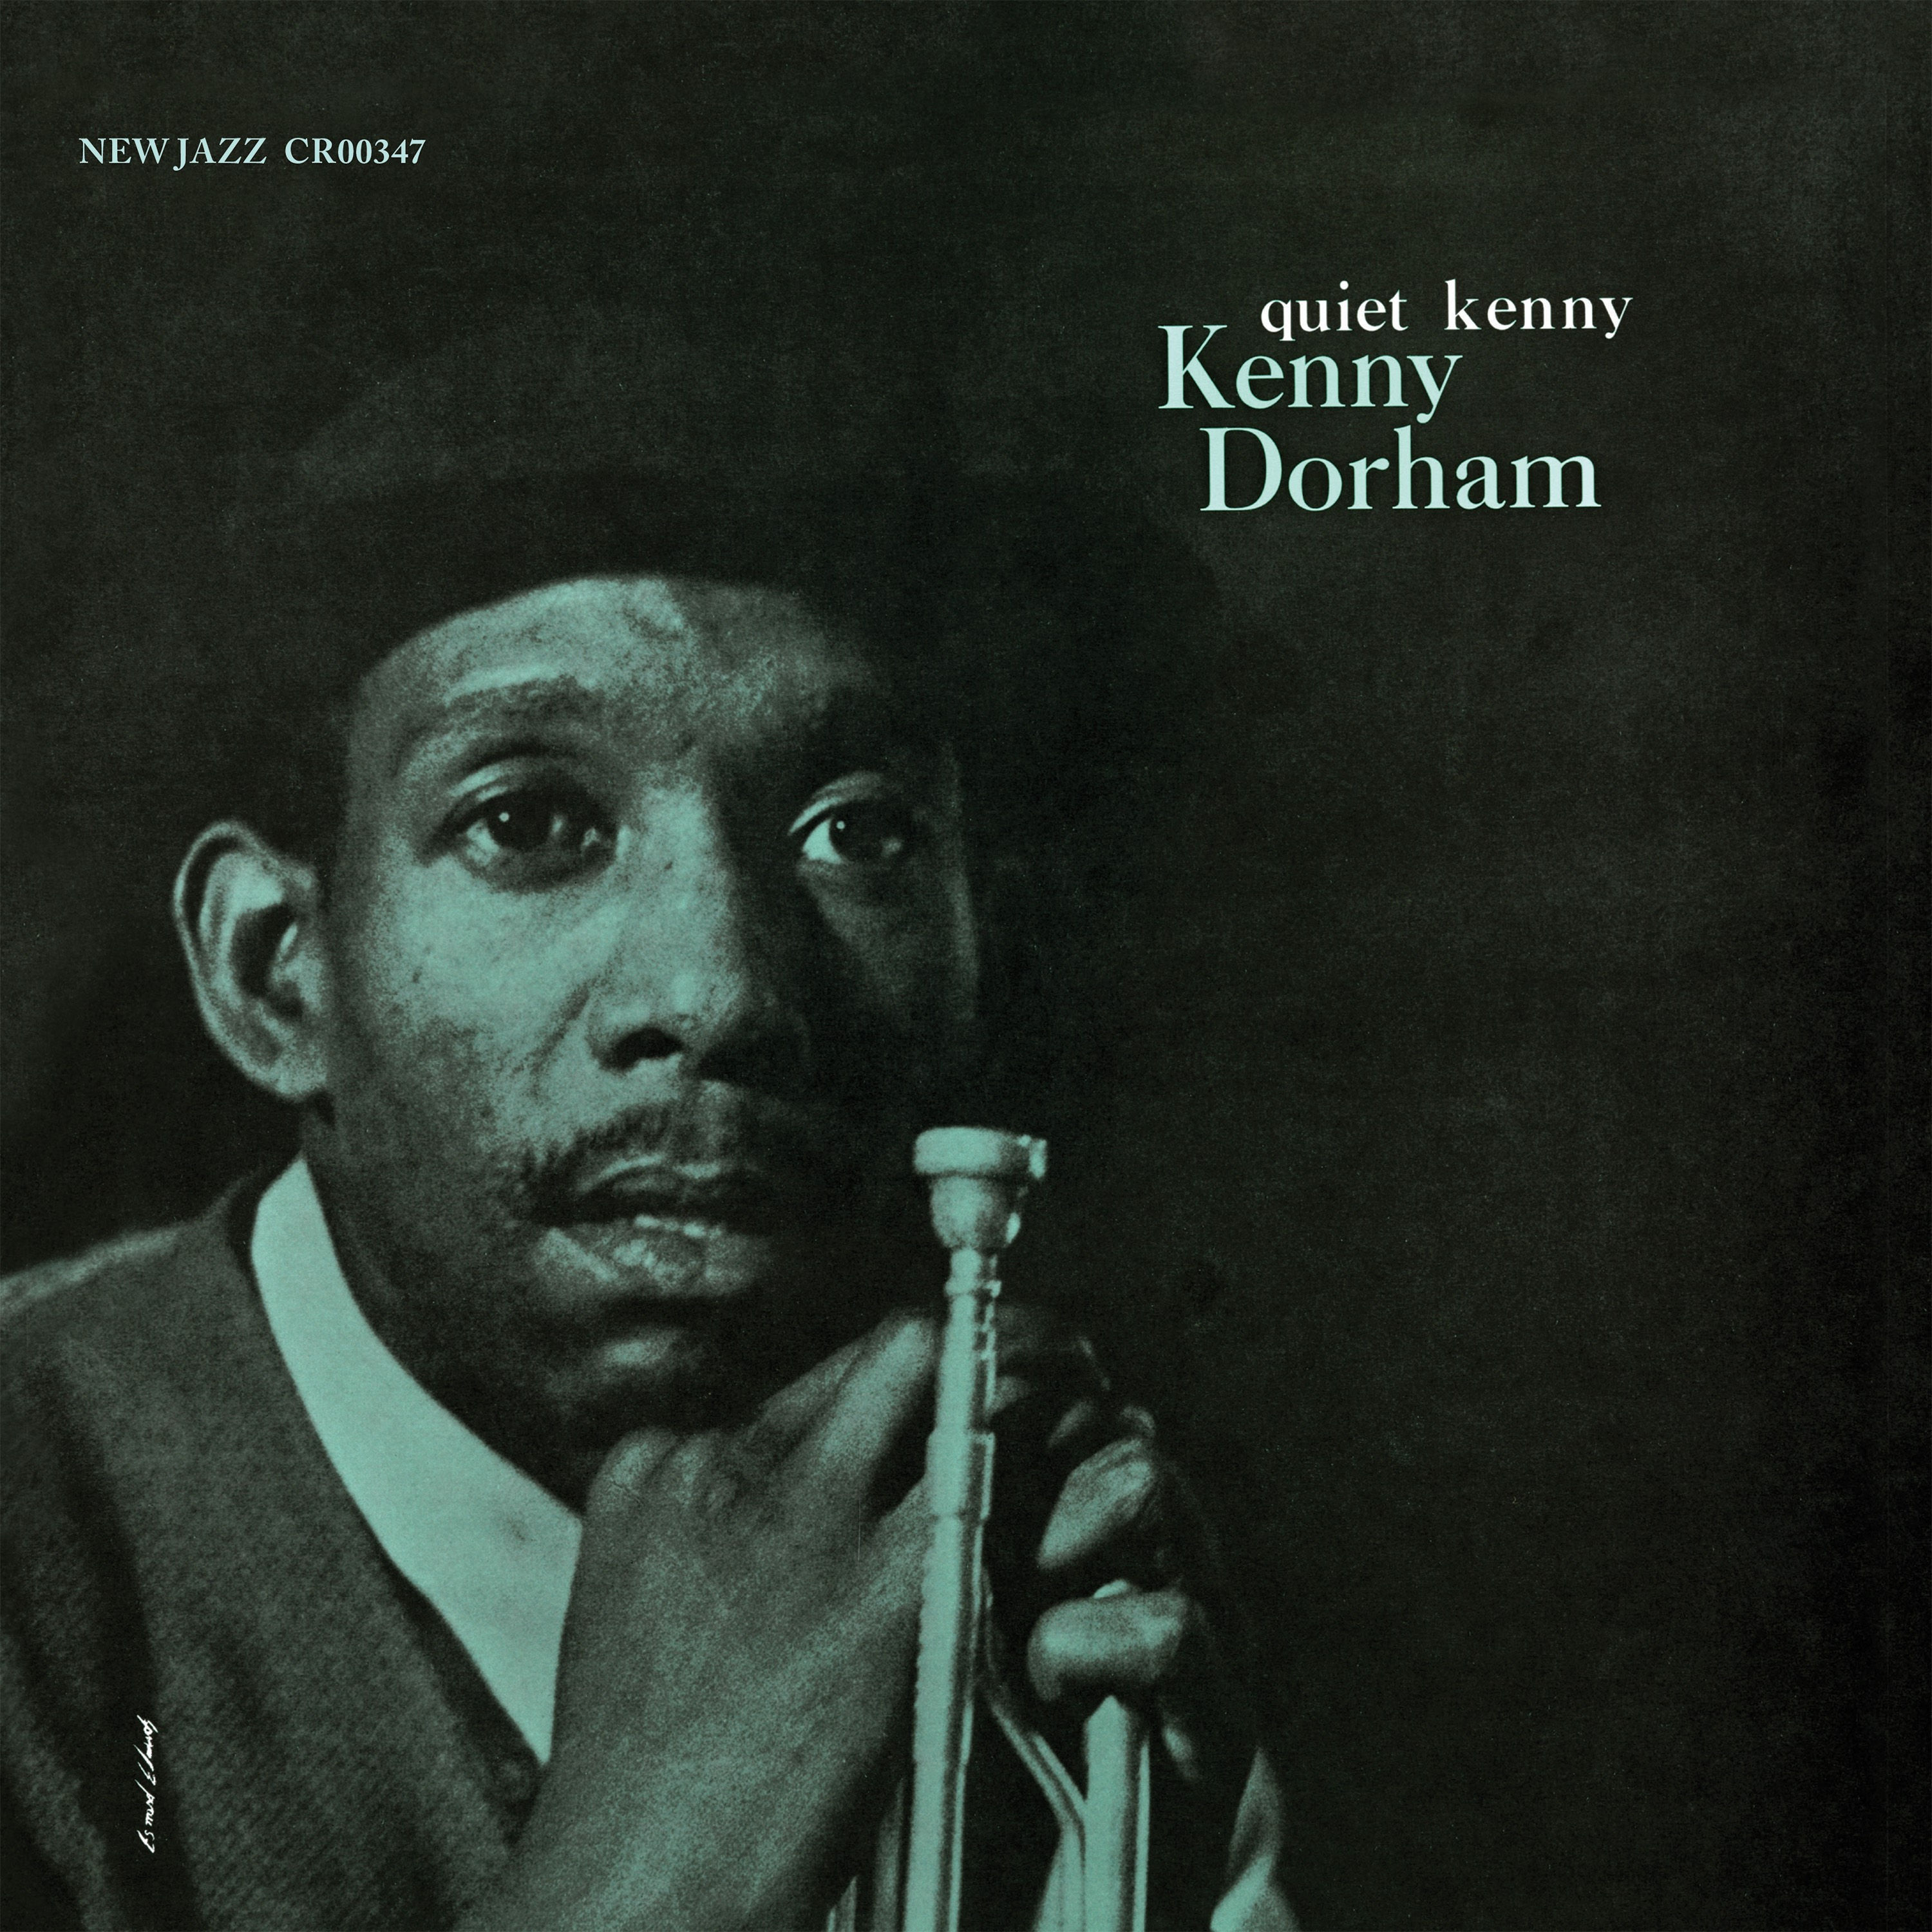 Kenny Dorham - Quiet Kenny [RSD Drops 2021]